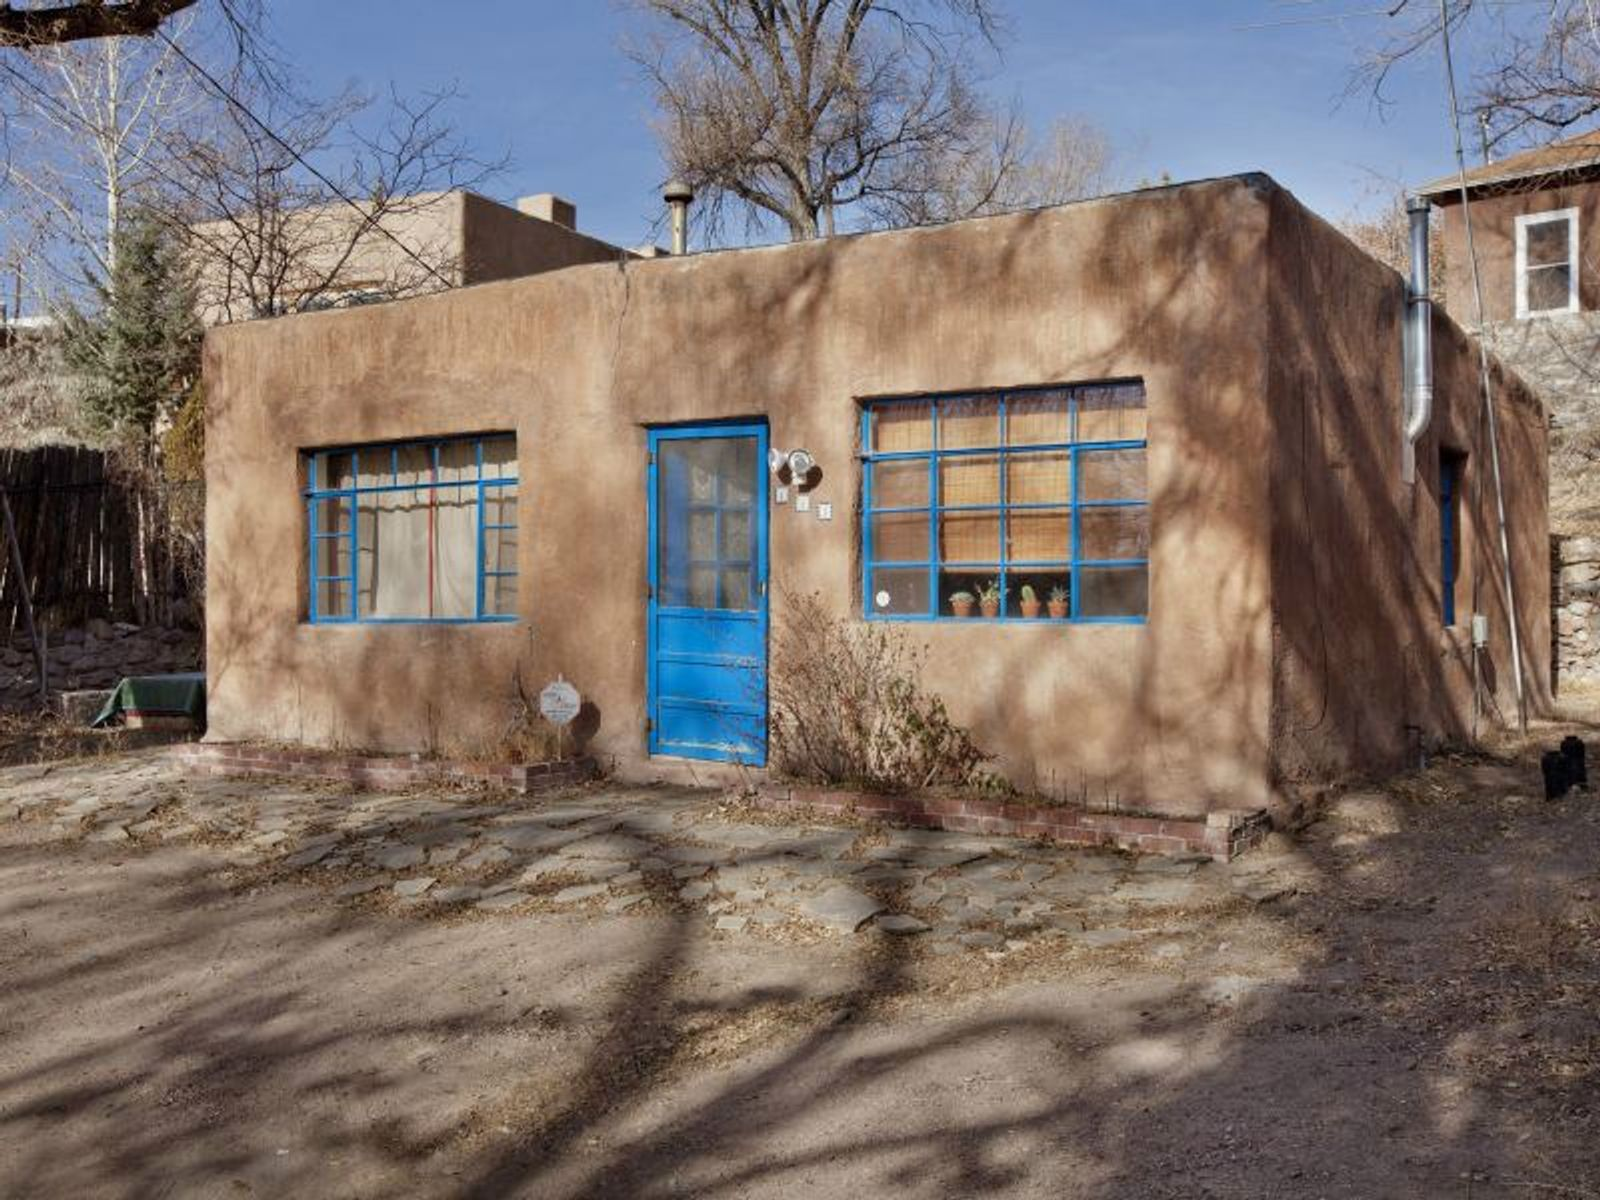 115 Rodriguez, Santa Fe NM Single Family Home - Santa Fe Real Estate